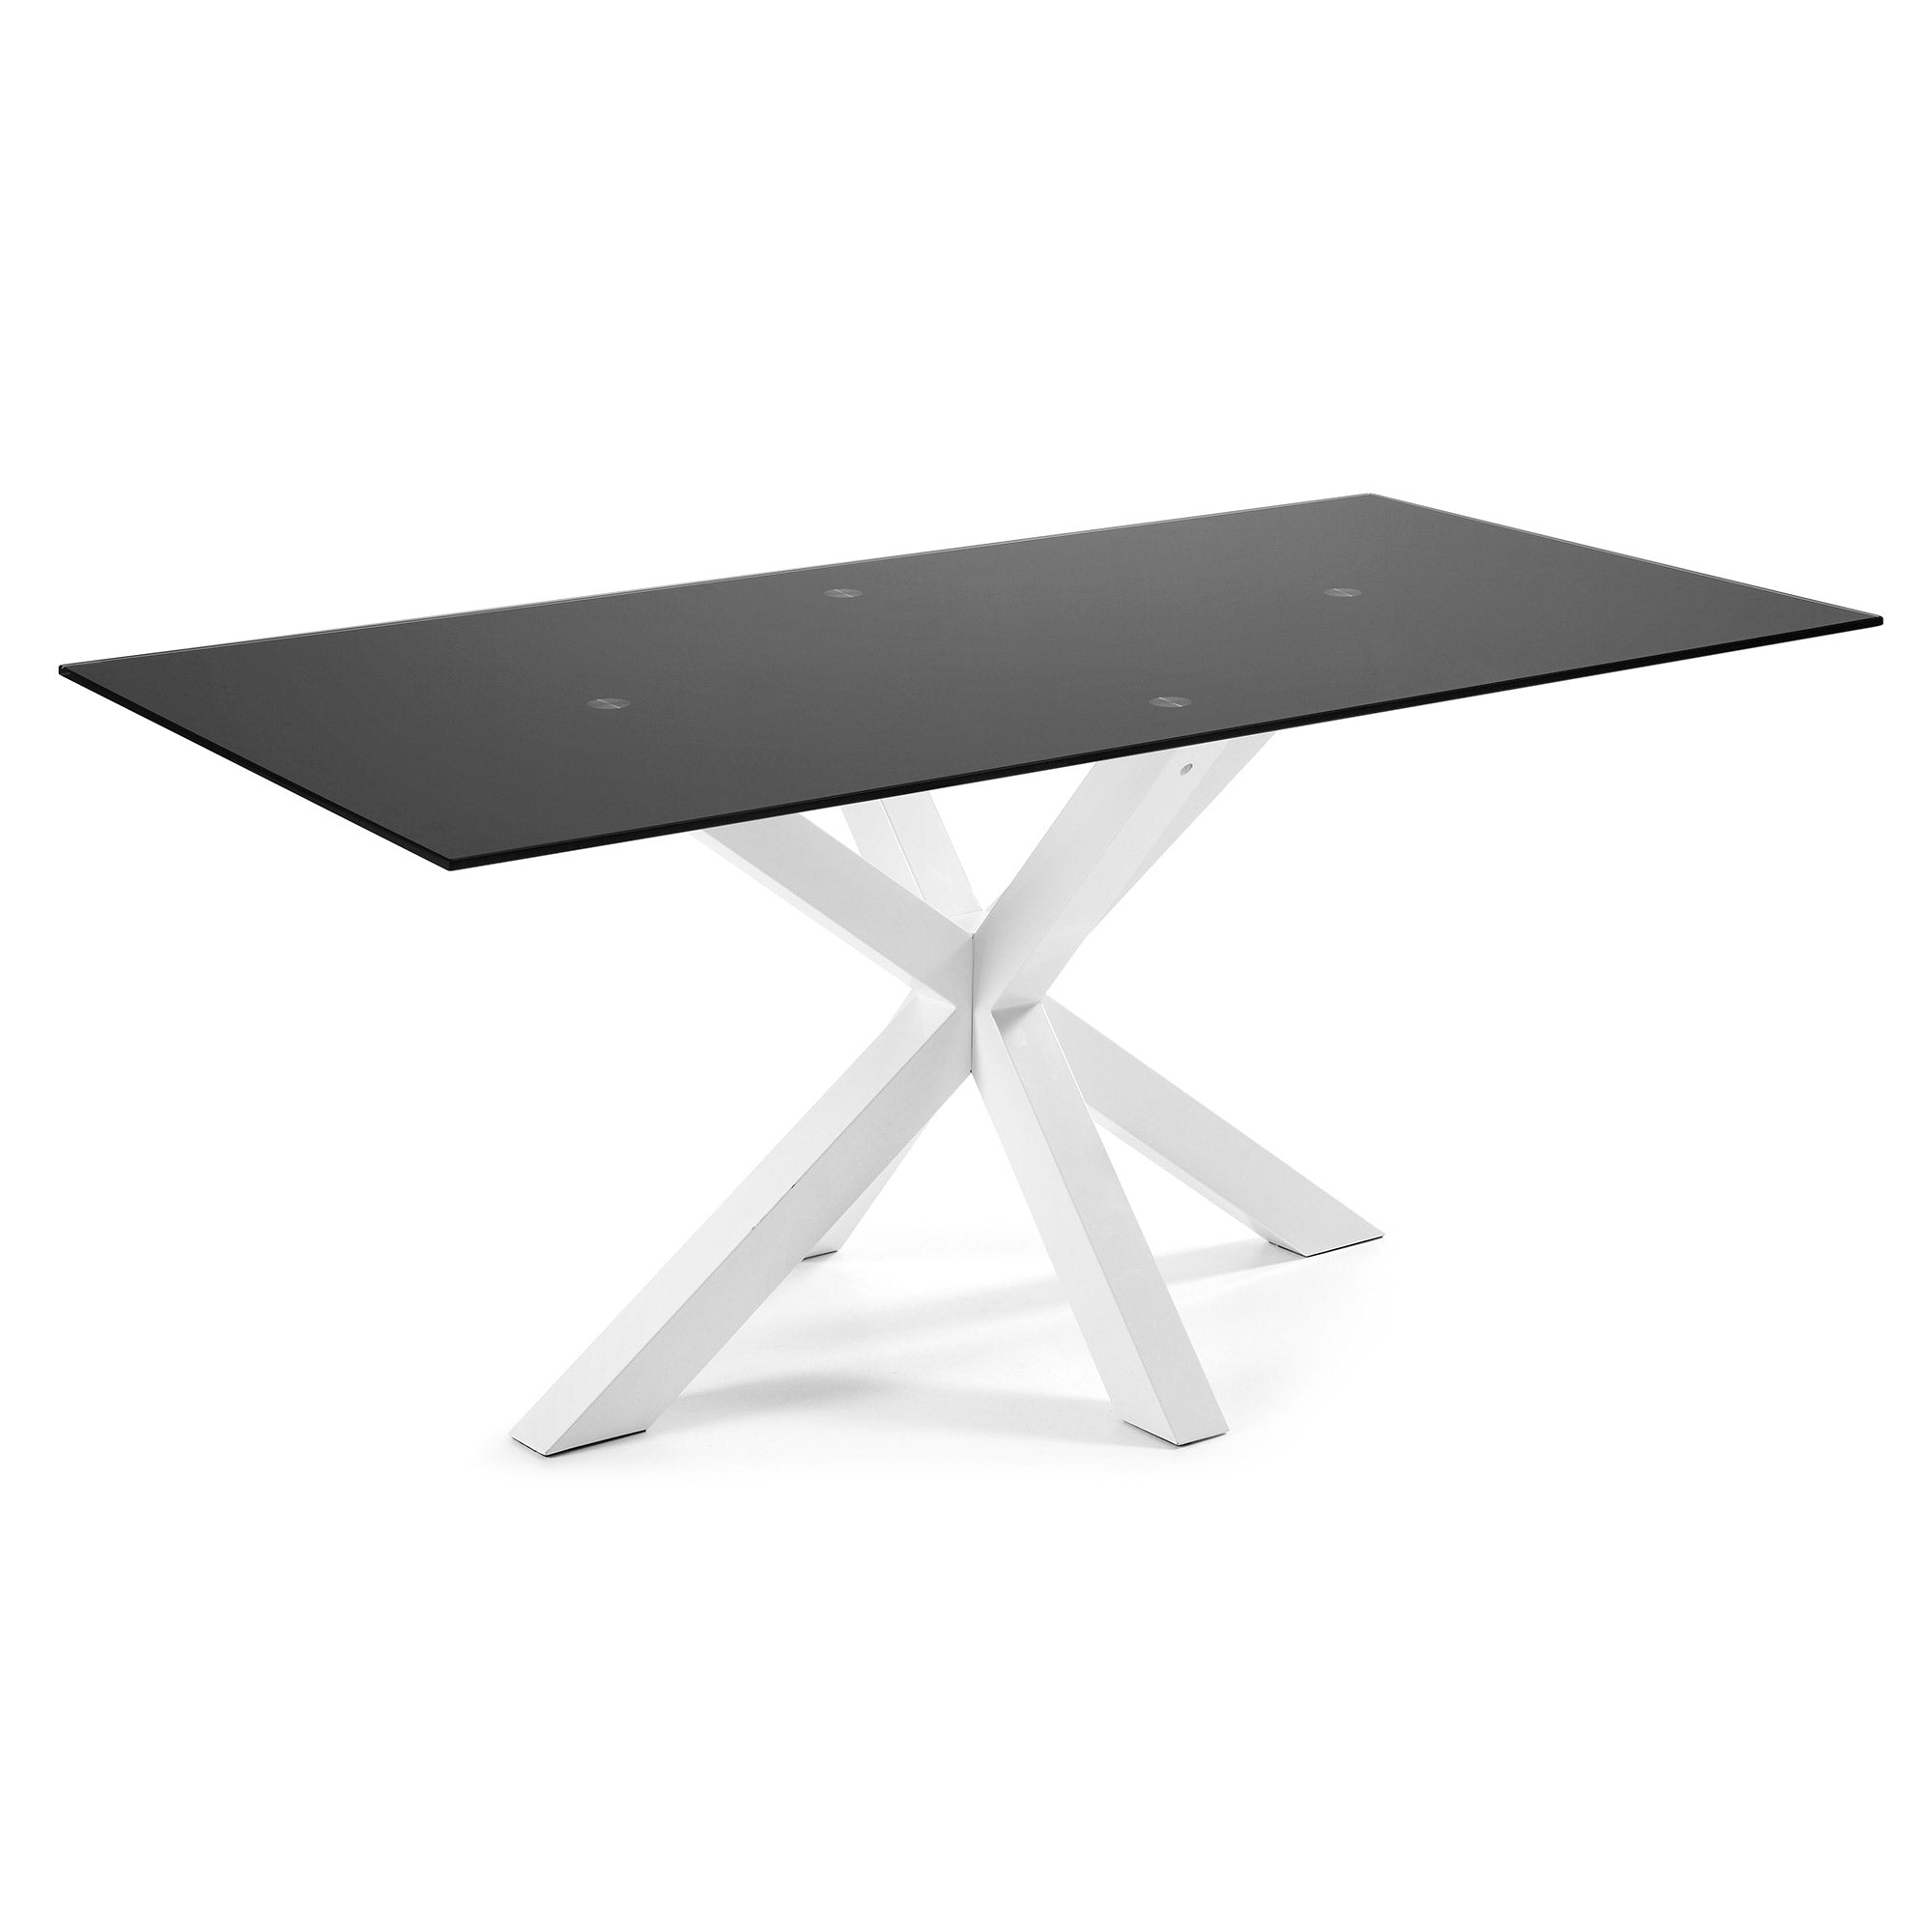 Mermi Dining Table 2m Epoxy White Glass Black - C360C01, Dining Table - Home-Buy Interiors